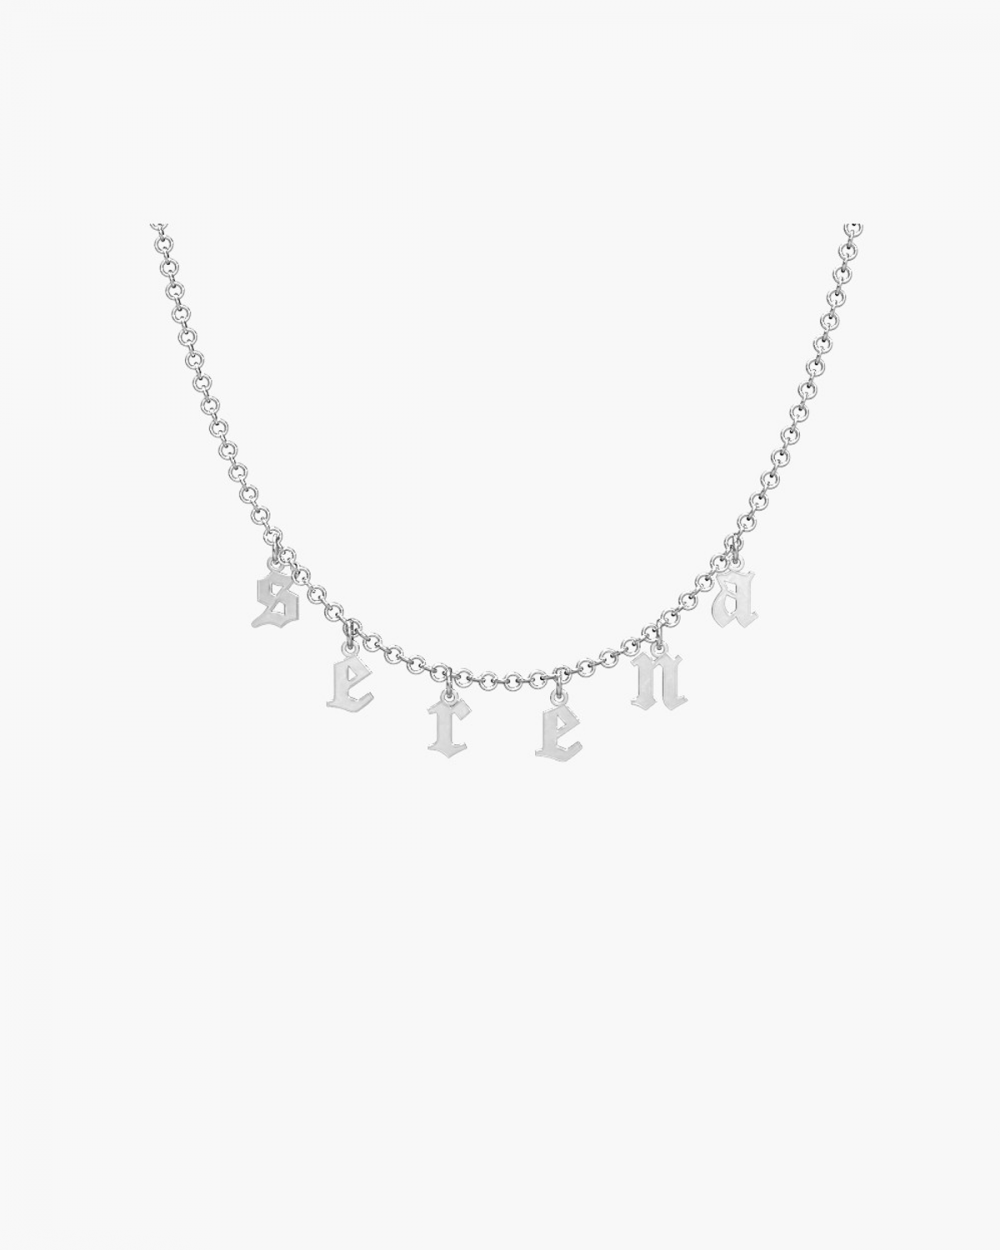 MYNOVE25 PENDANT LETTERS NECKLACE NOVE25